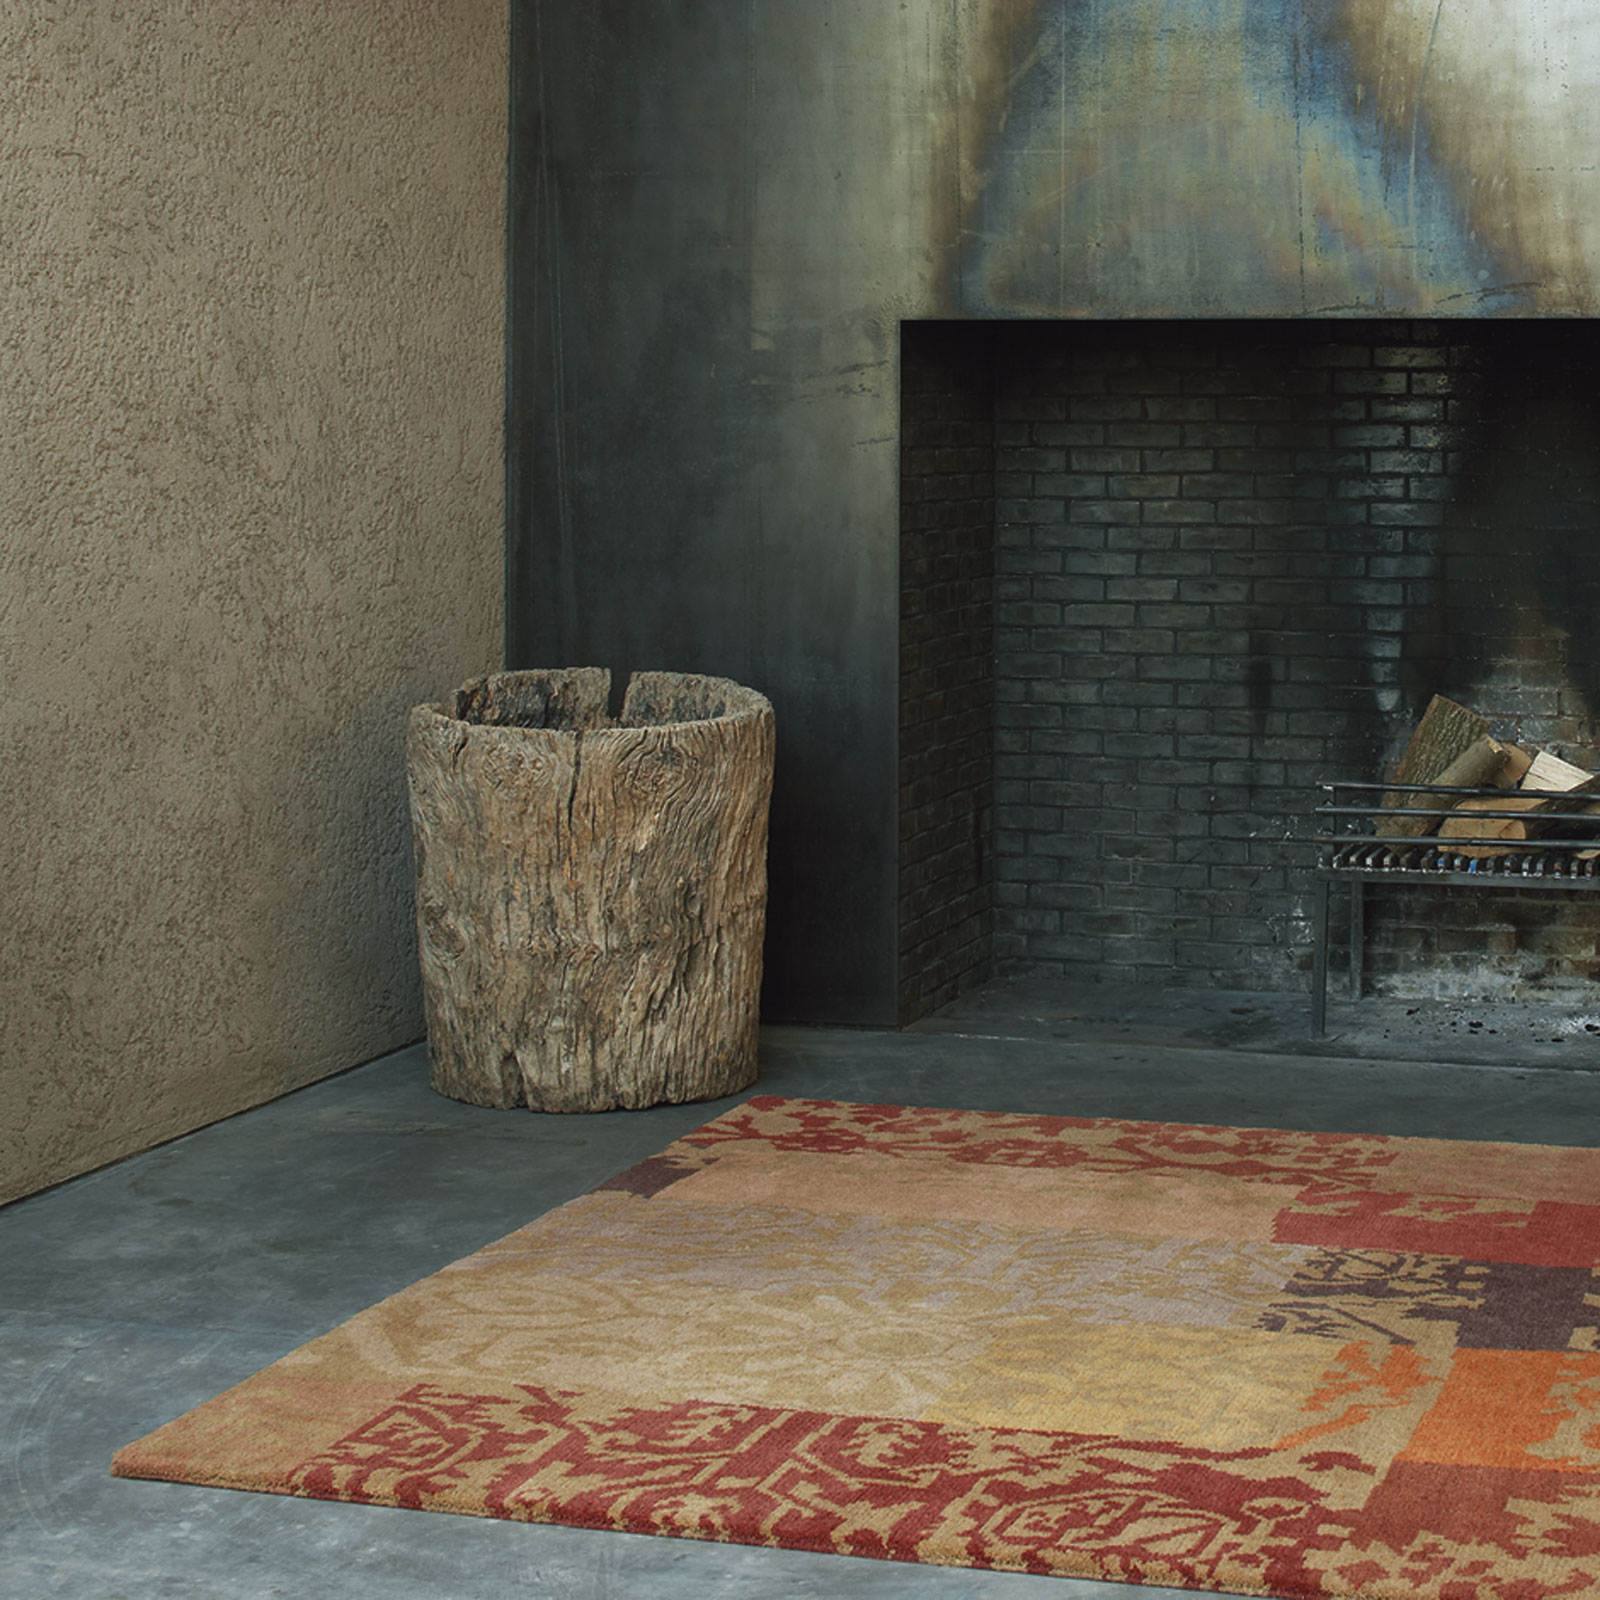 Kodari Hand Knotted Wool Rugs by Brink and Campman